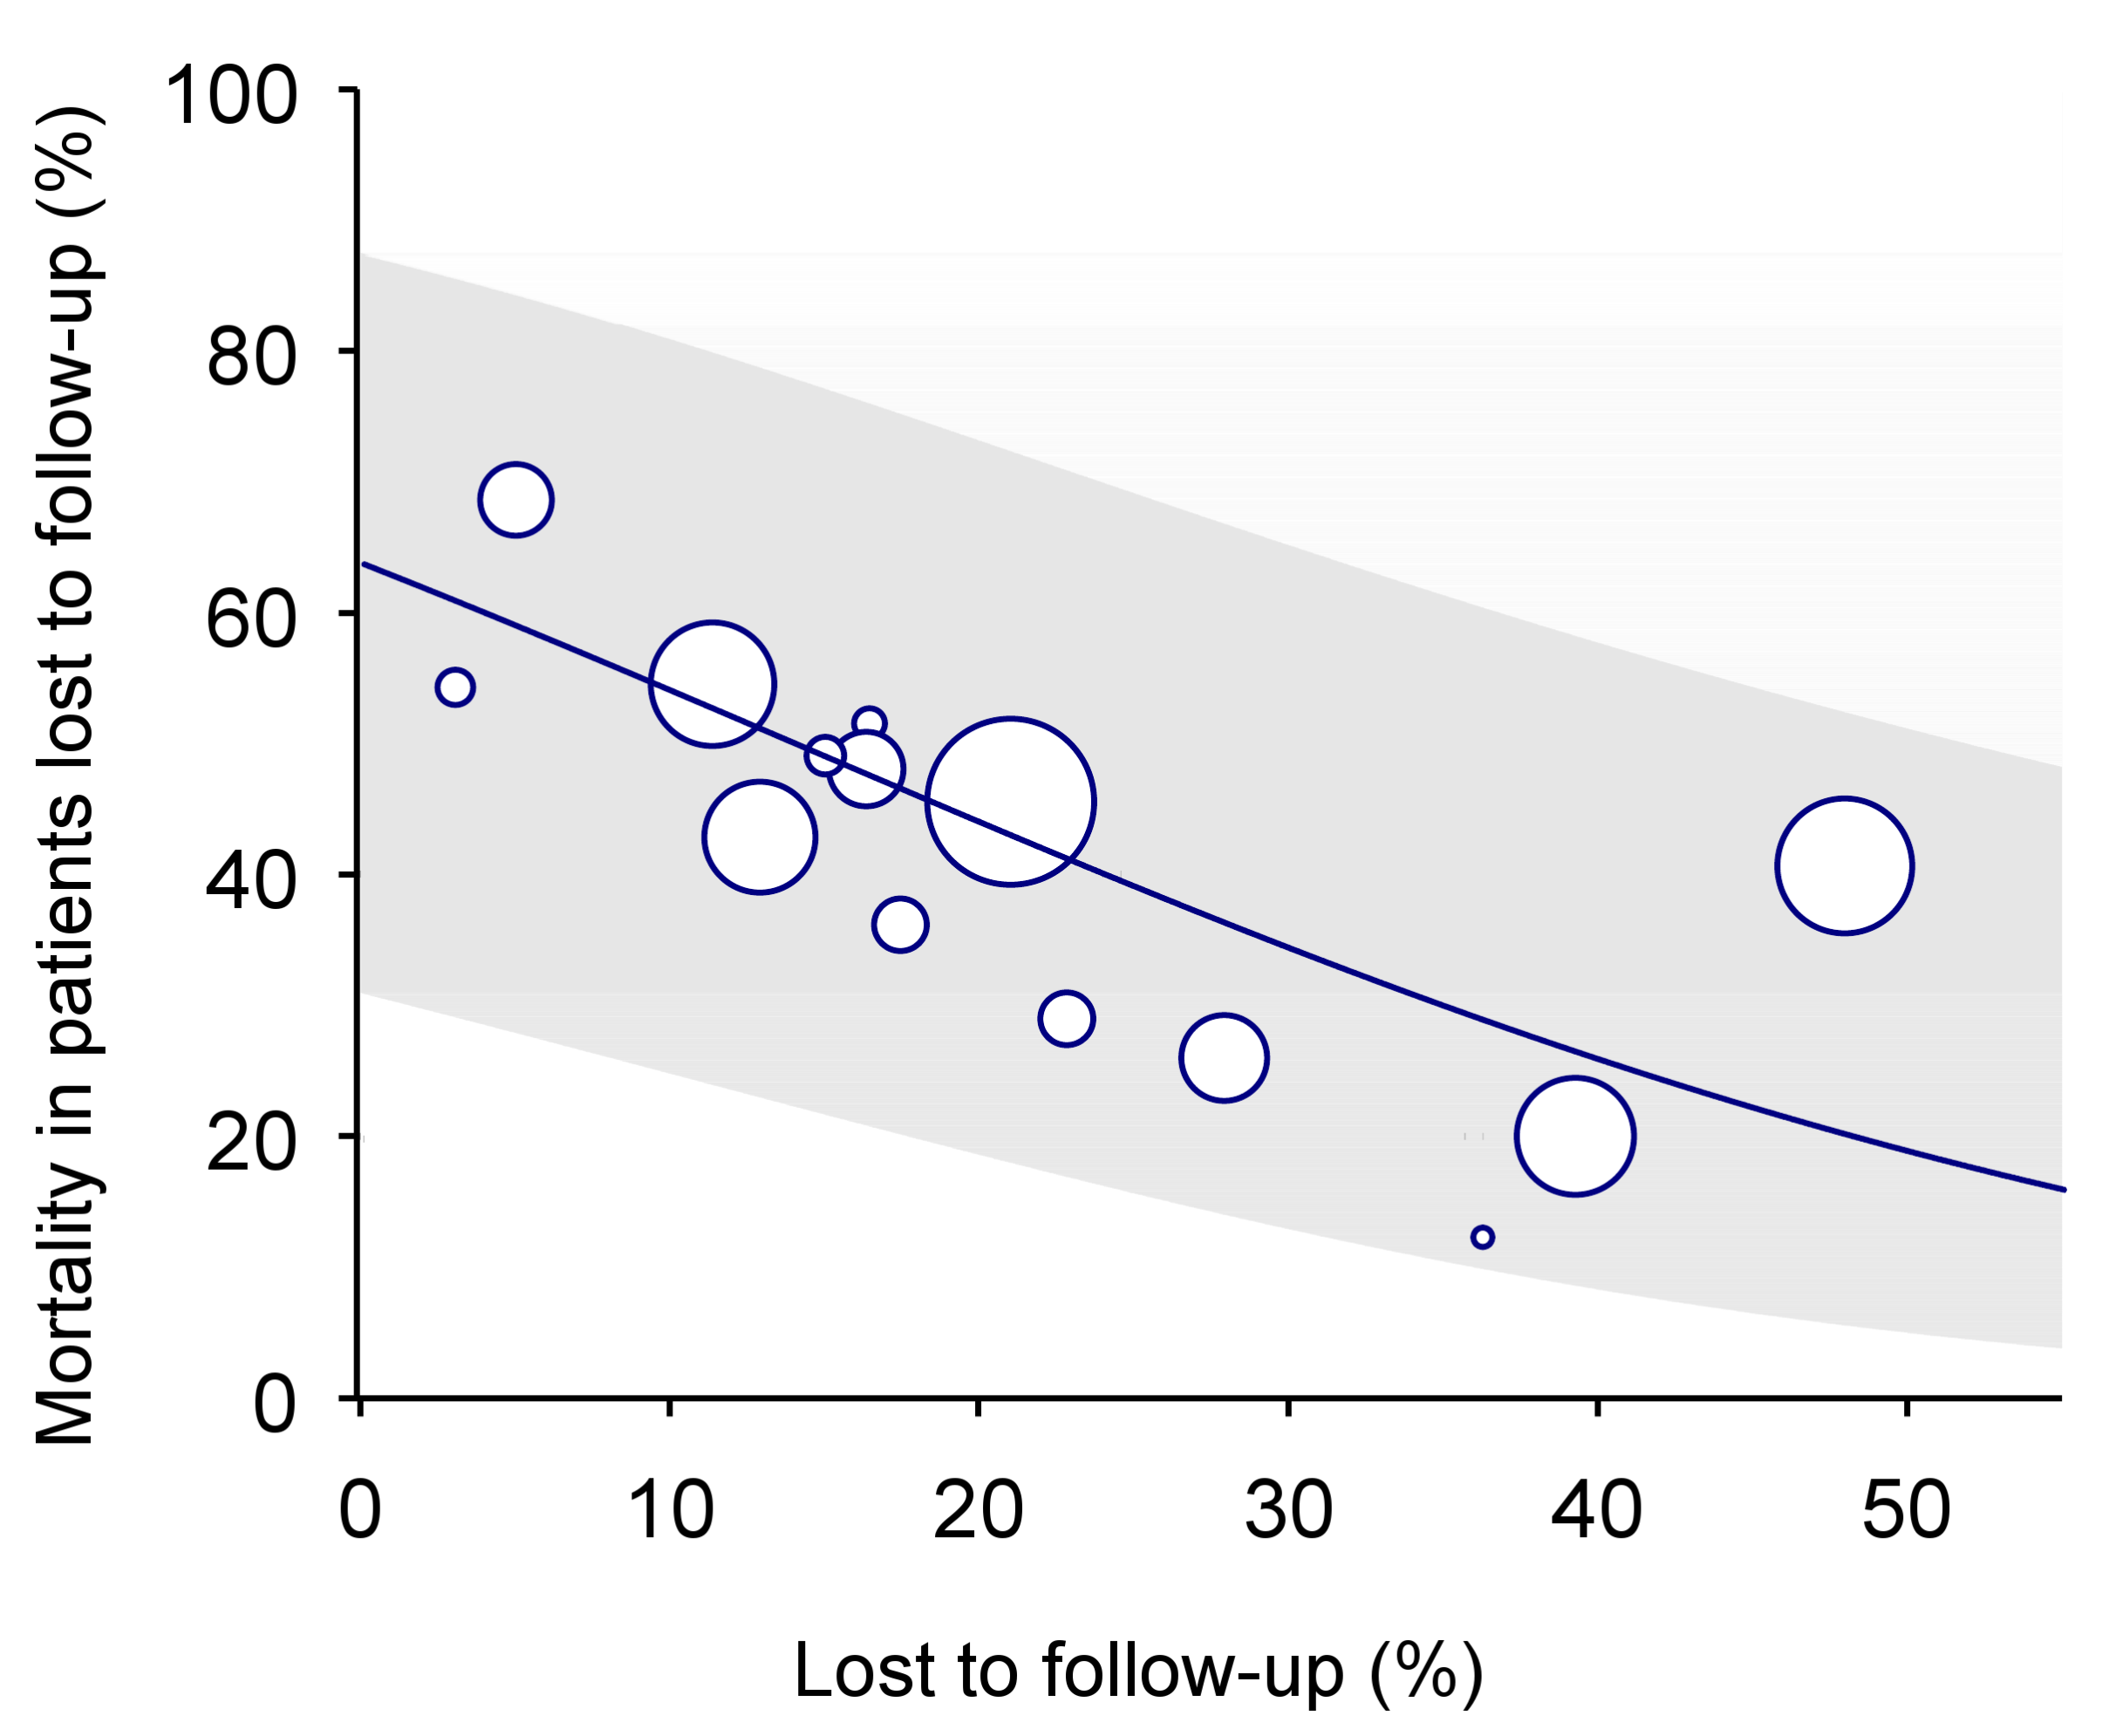 Predicted mortality among patients lost to follow-up according to percent of patients lost in programme (solid line) with 95% CI (limits of grey area).